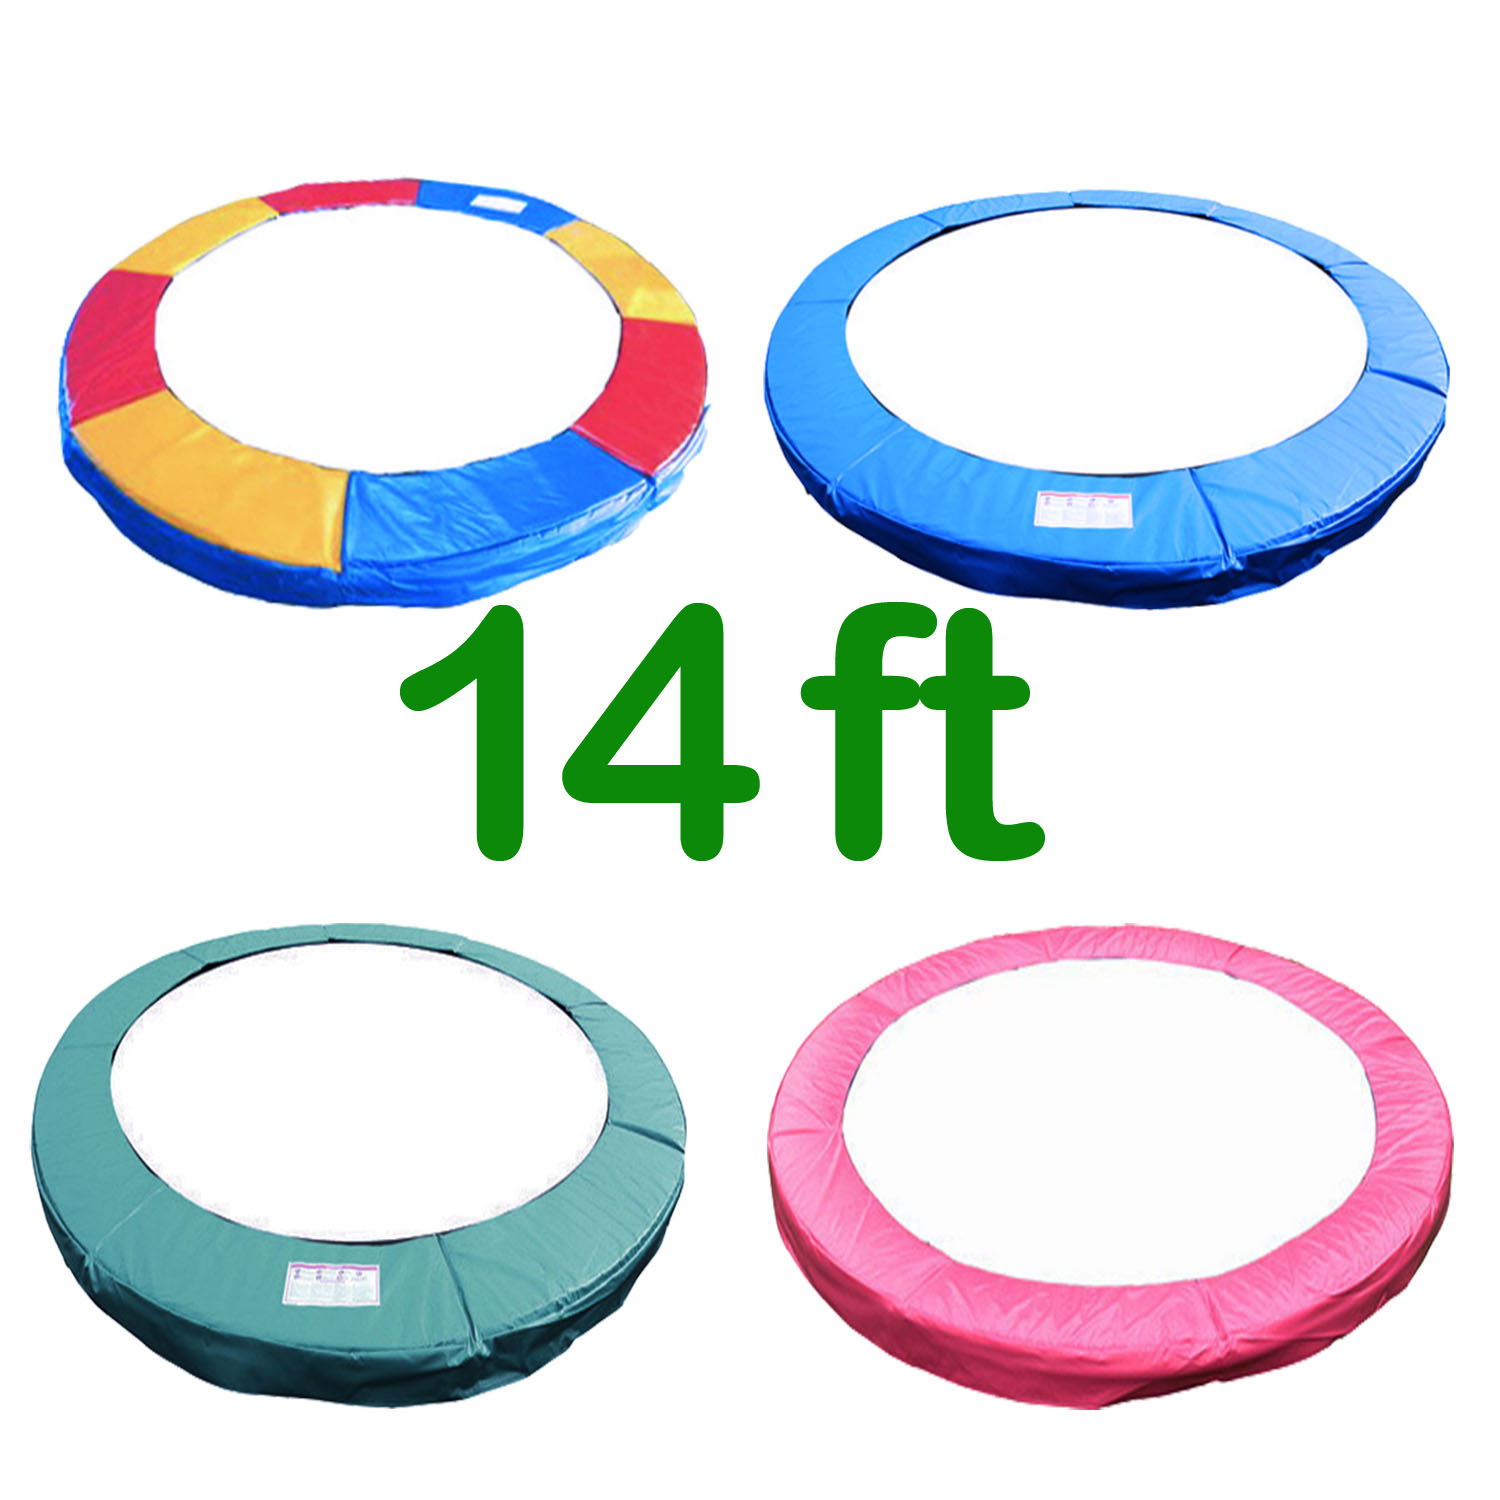 14 Ft Trampoline Safety Pad Epe Foam: 14 FT TRAMPOLINE REPLACEMENT PAD PADDING SPRING COVER FOAM